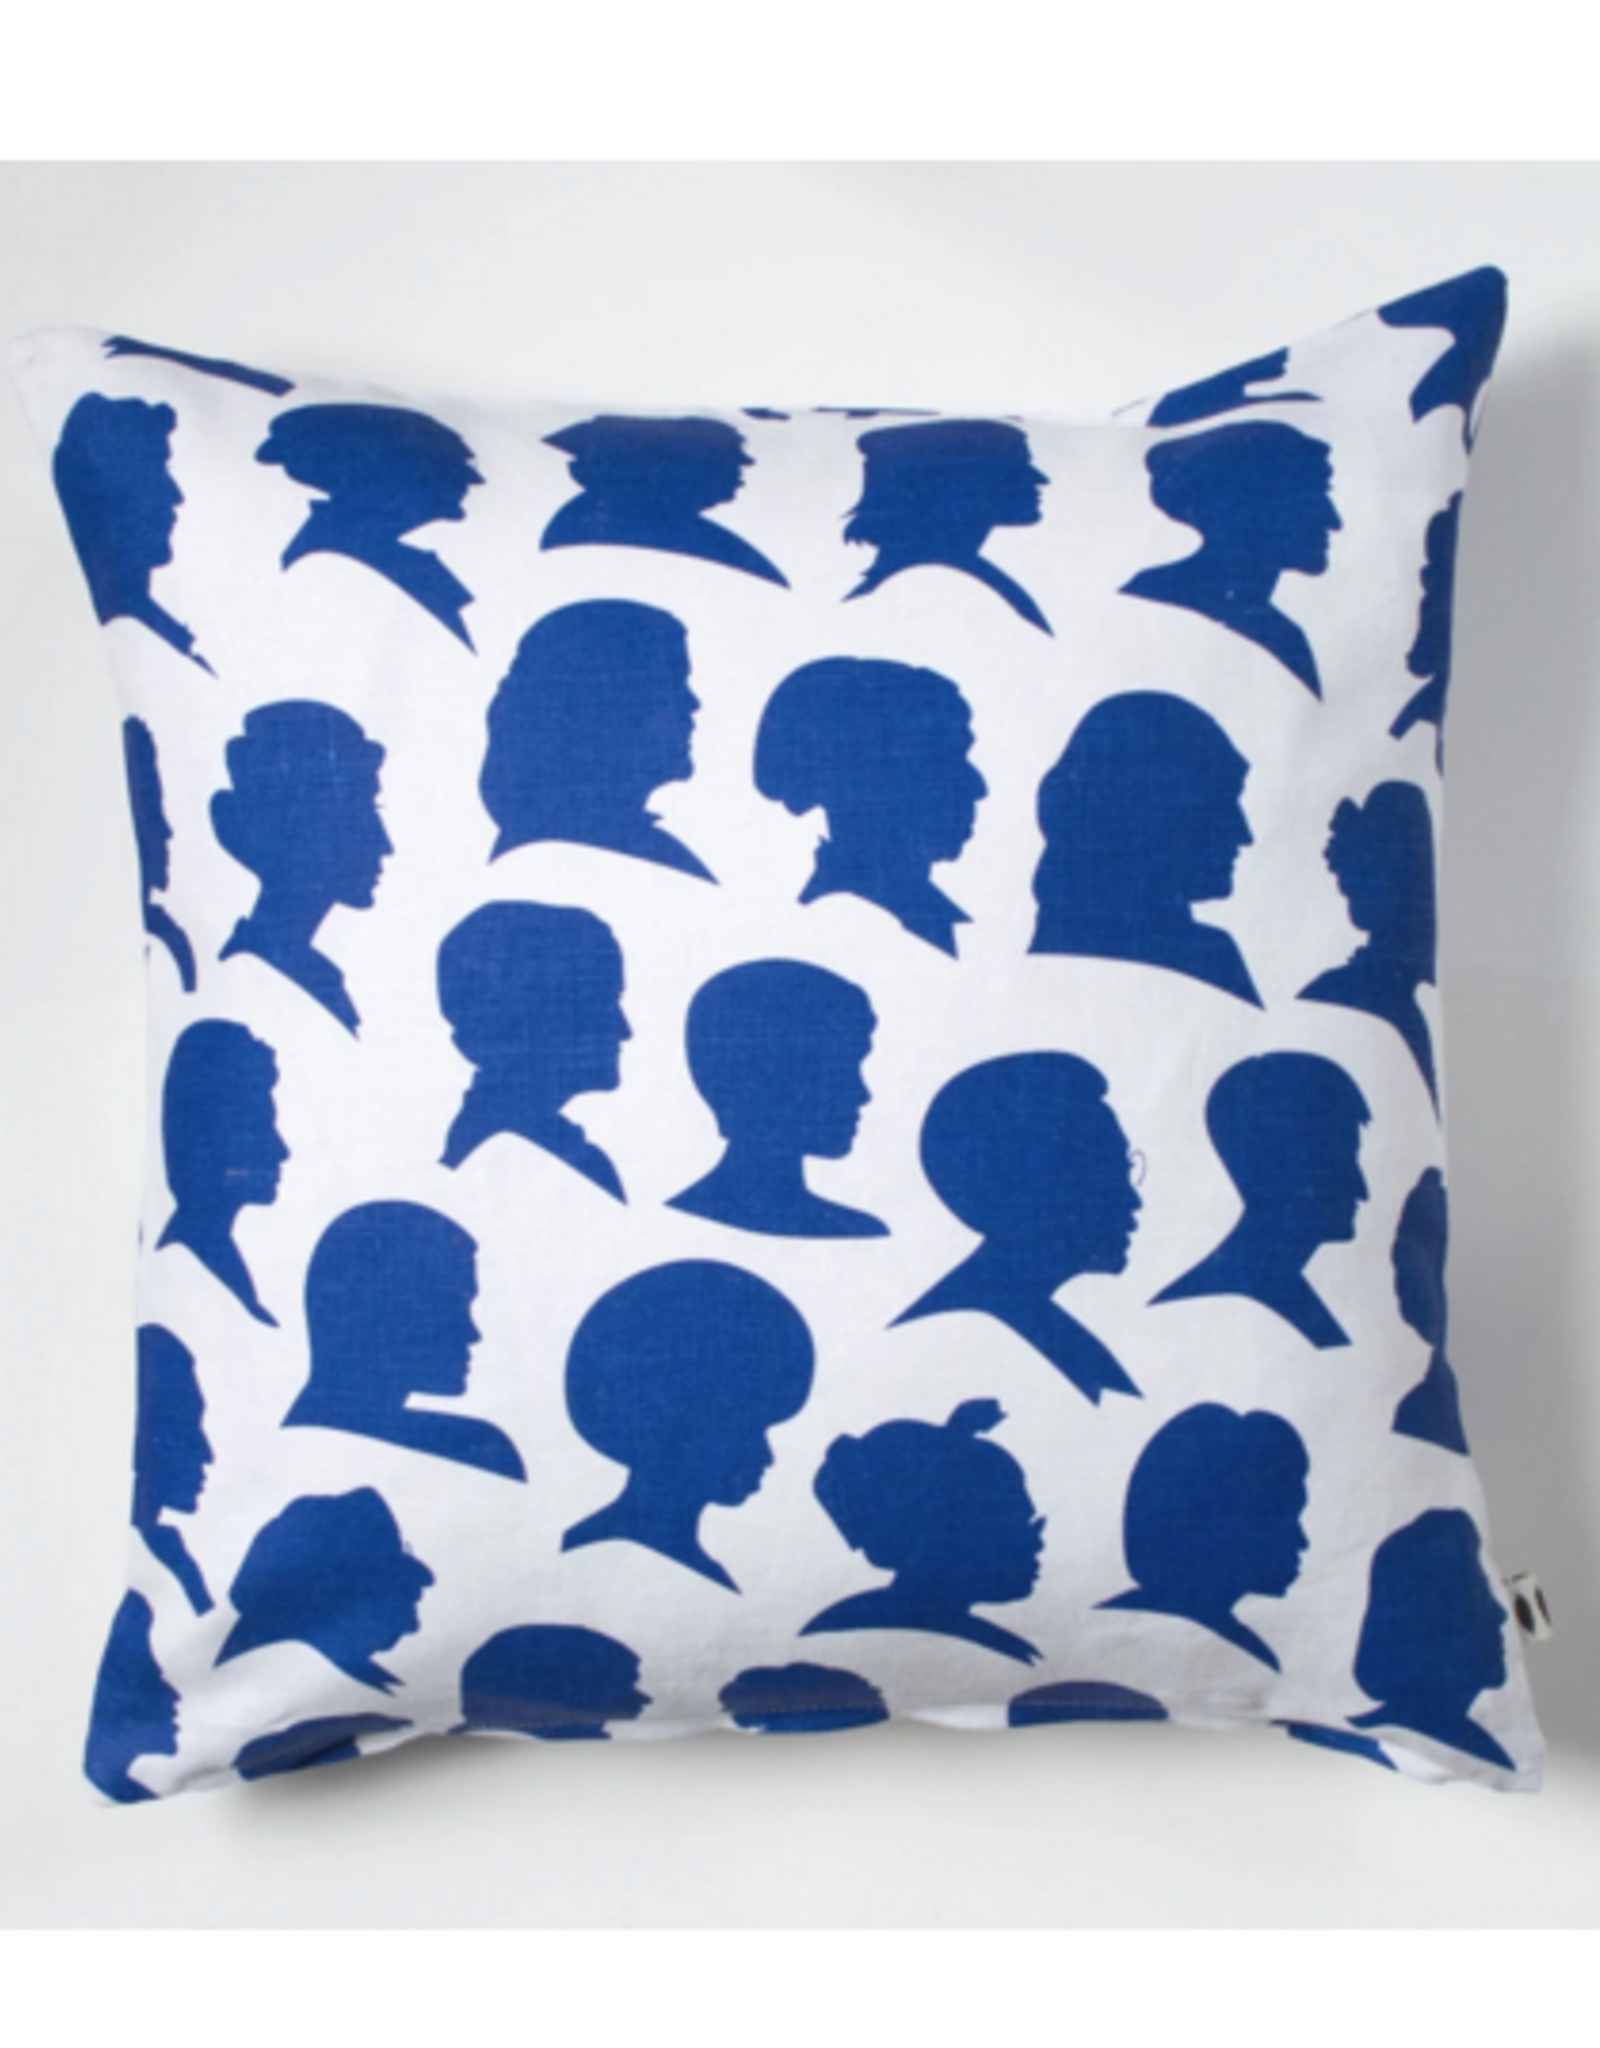 Banquet Atelier & Workshop ltd. Rad Women Pillow - Blue